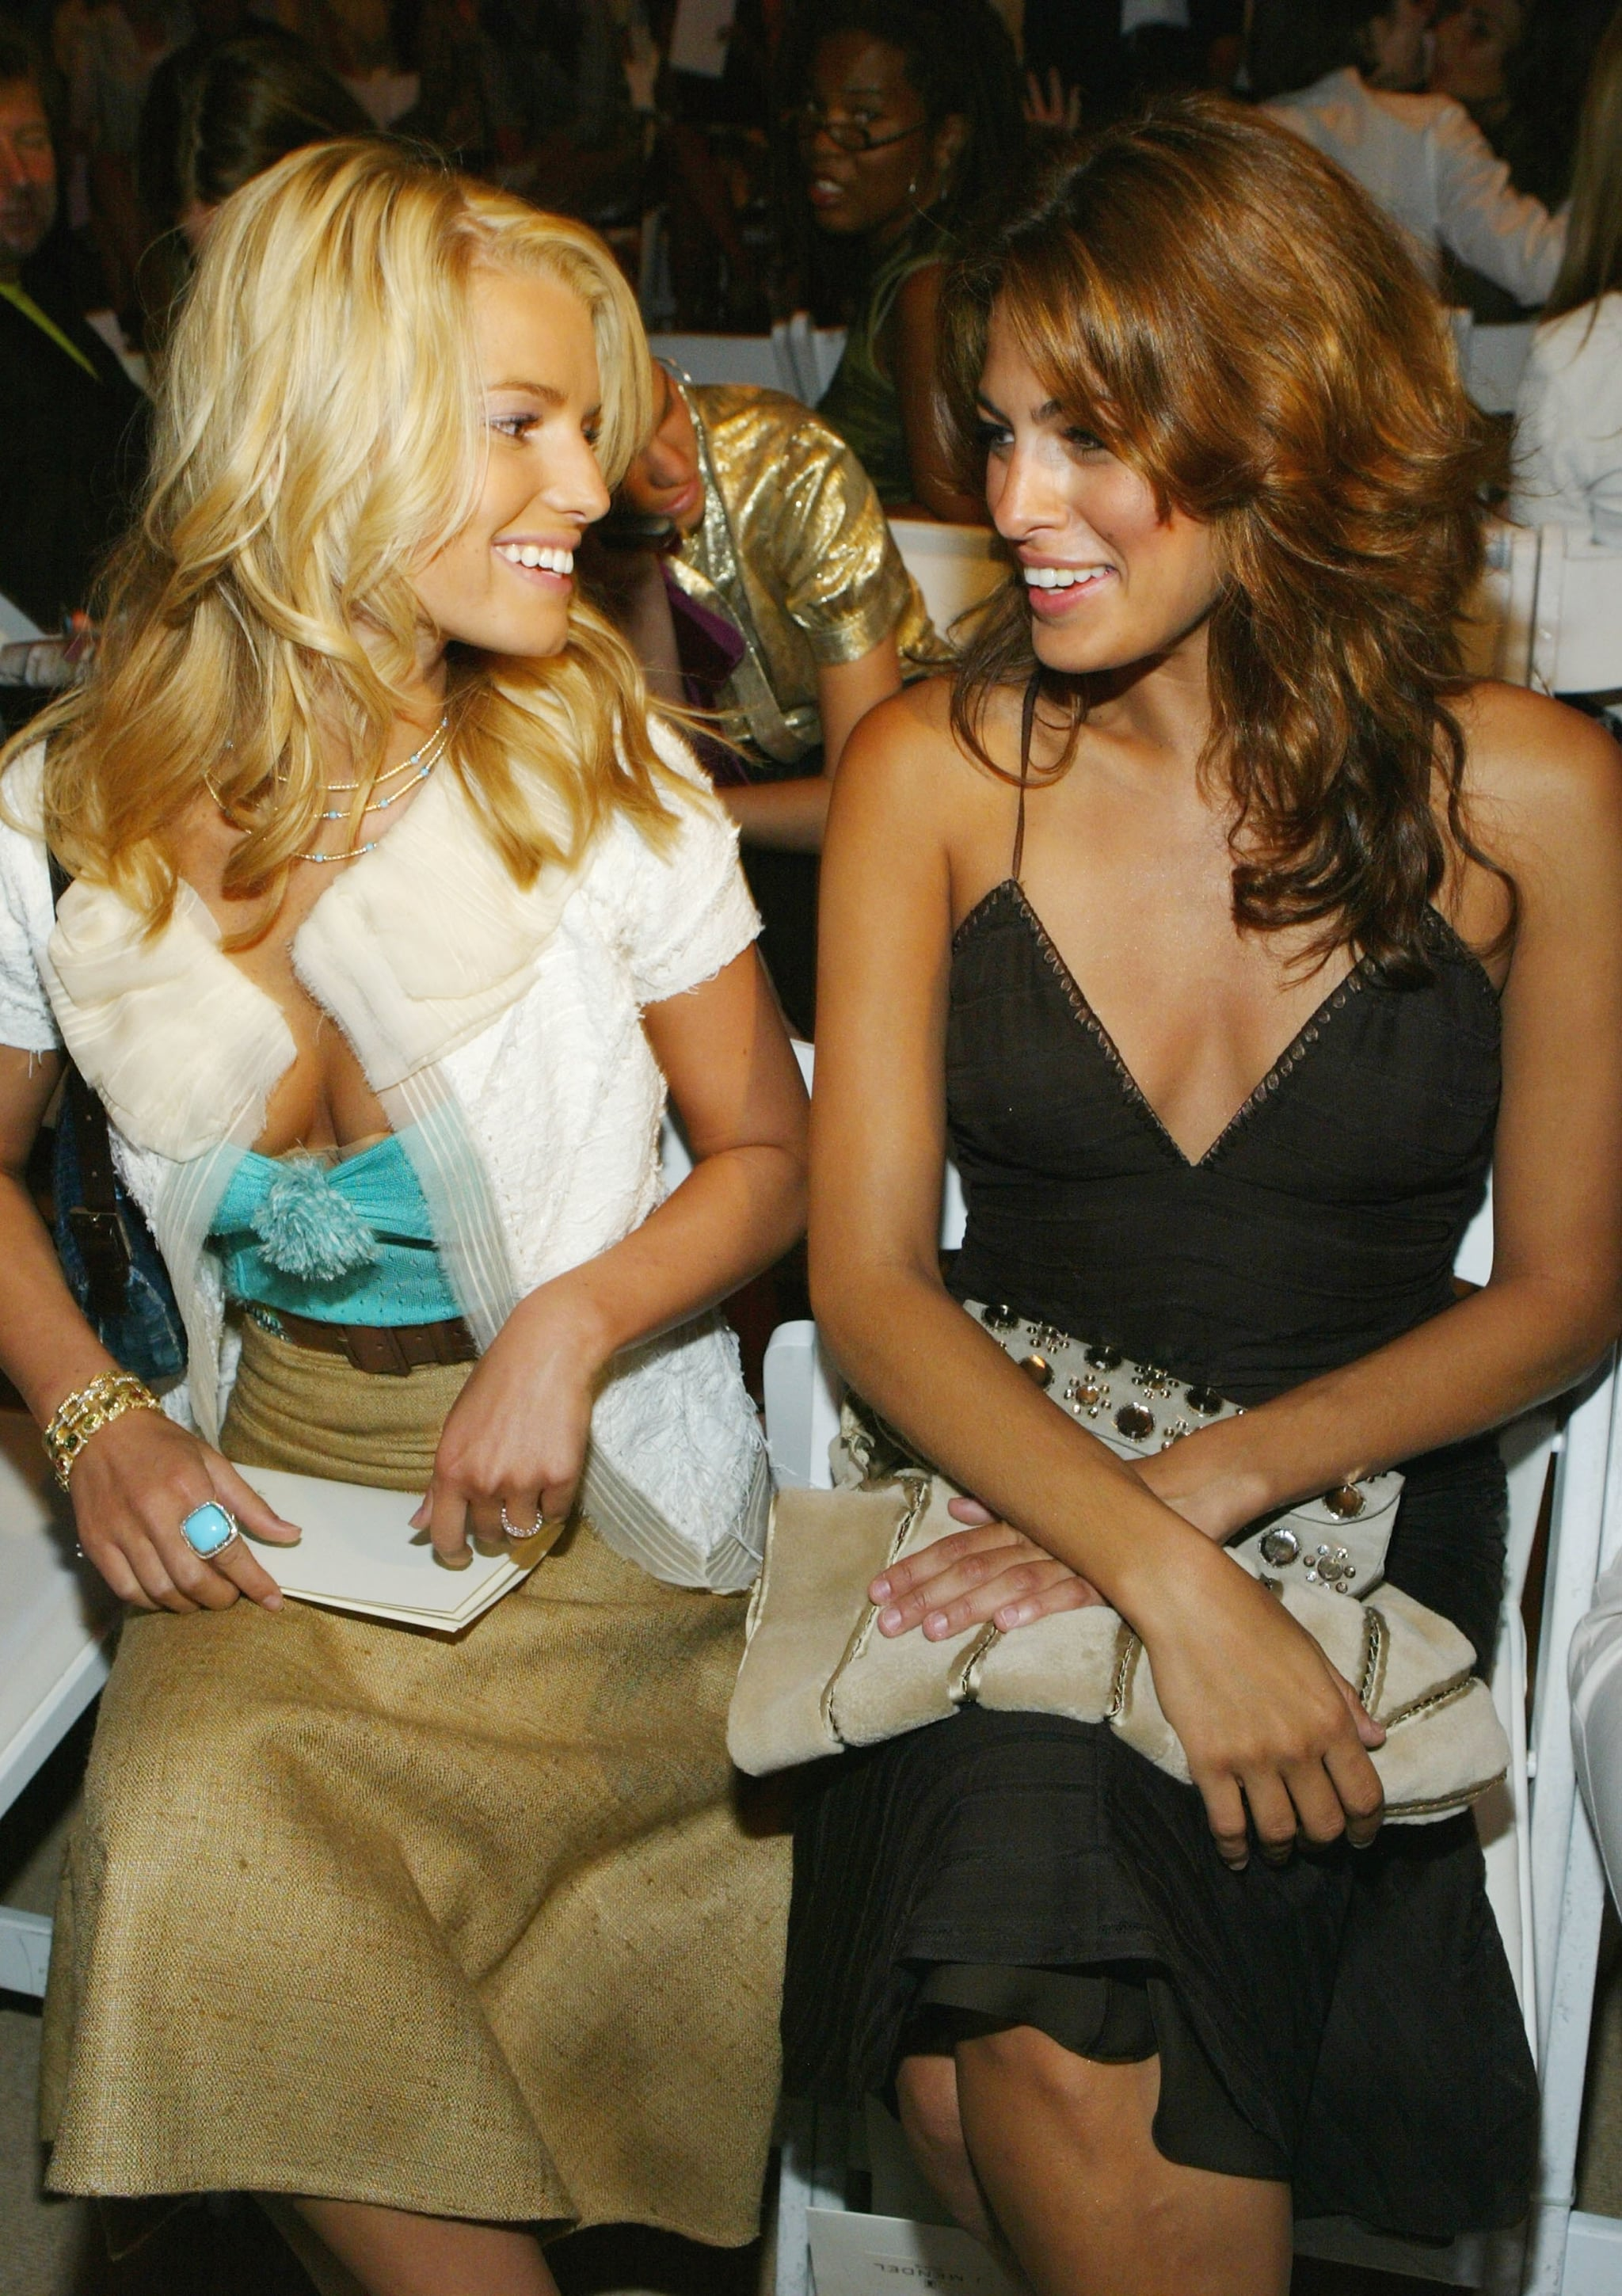 Jessica Simpson and Eva Mendes socialized while front row at J. Mendel's September 2005 show.